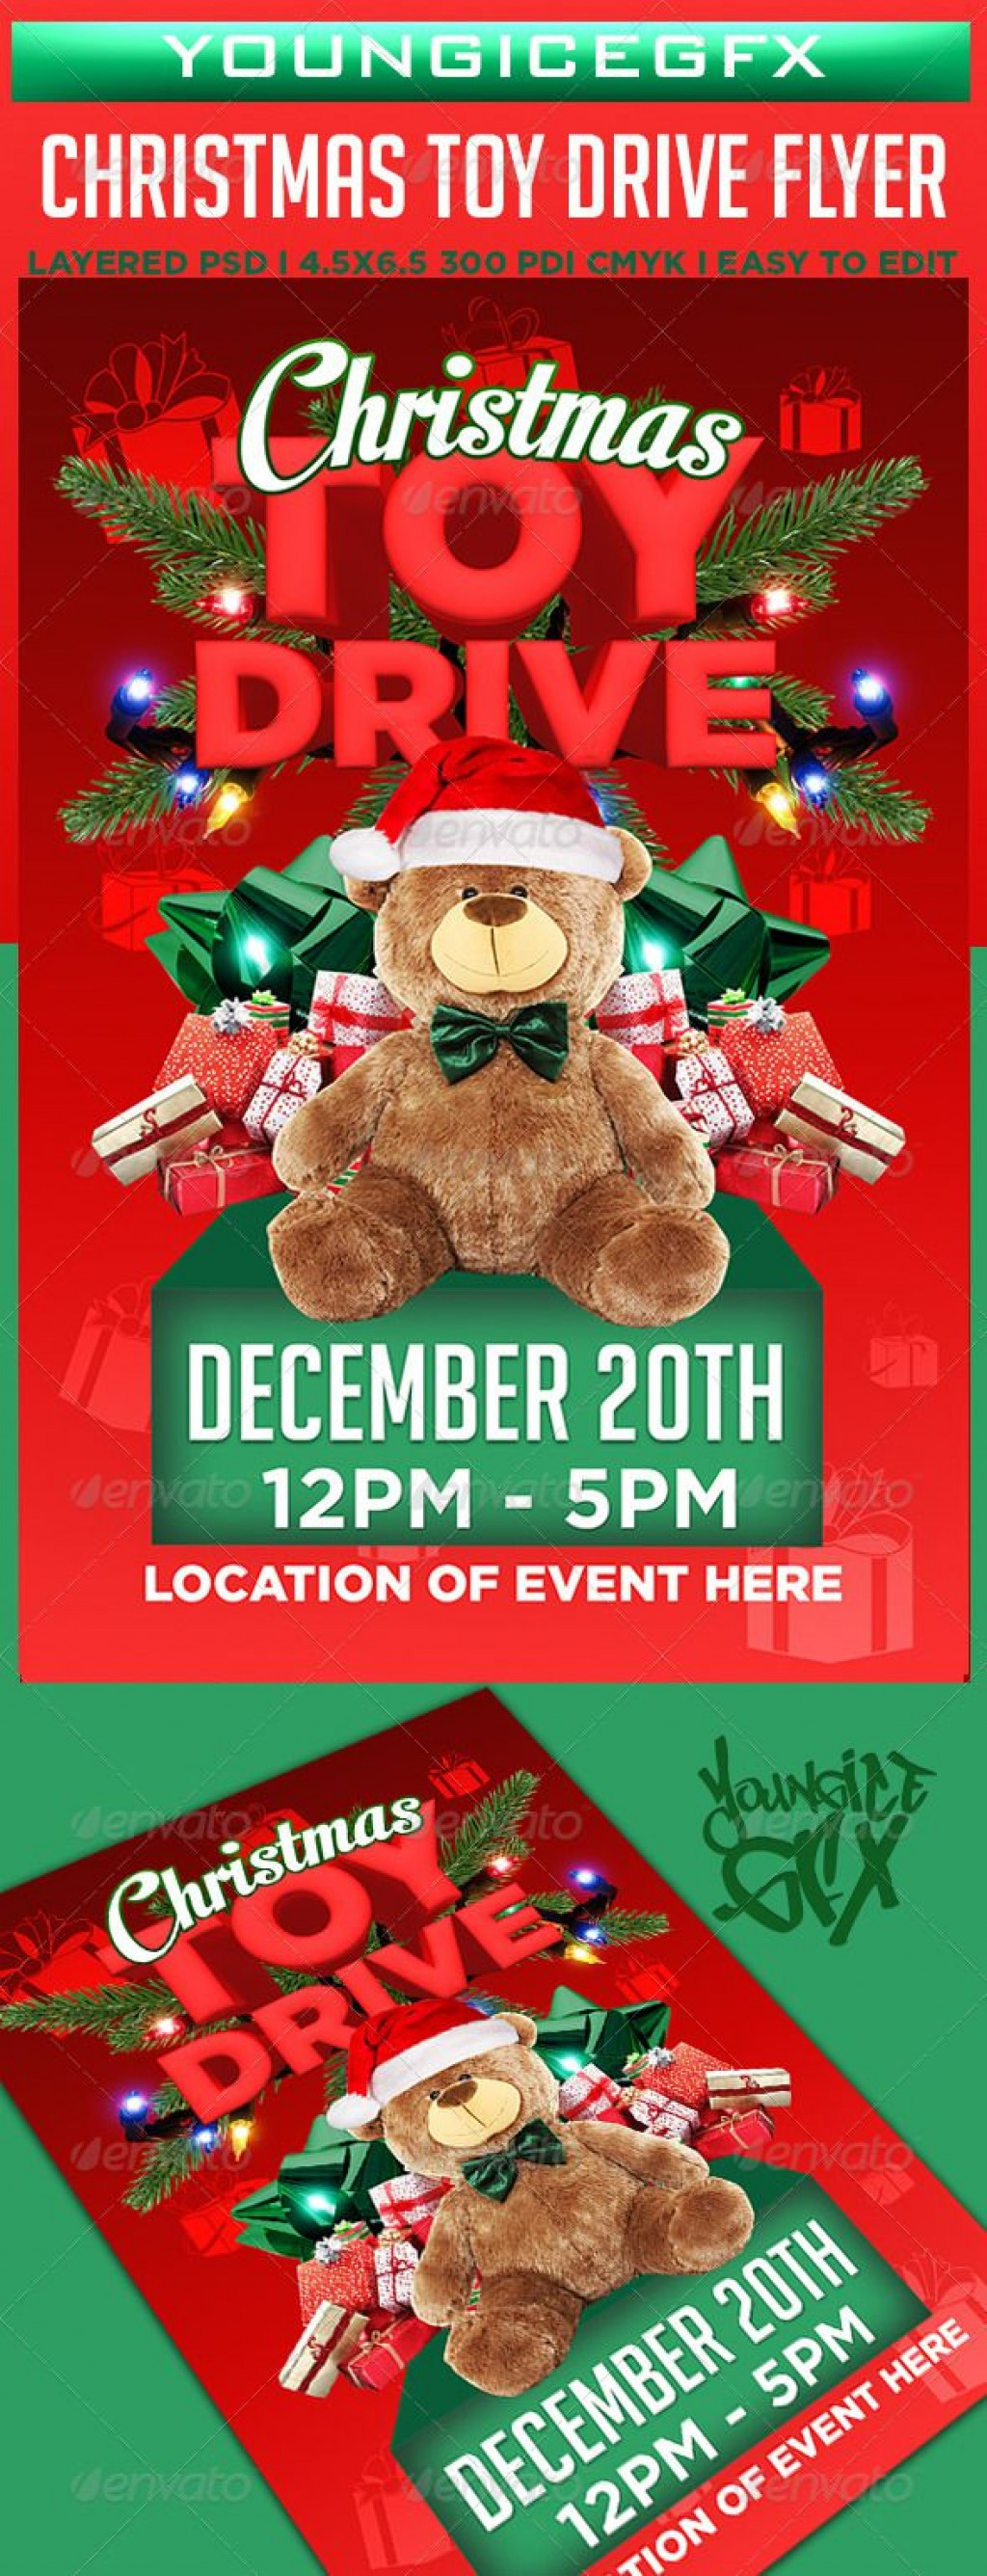 005 Dreaded Toy Drive Flyer Template Design  Holiday Download Free WordLarge